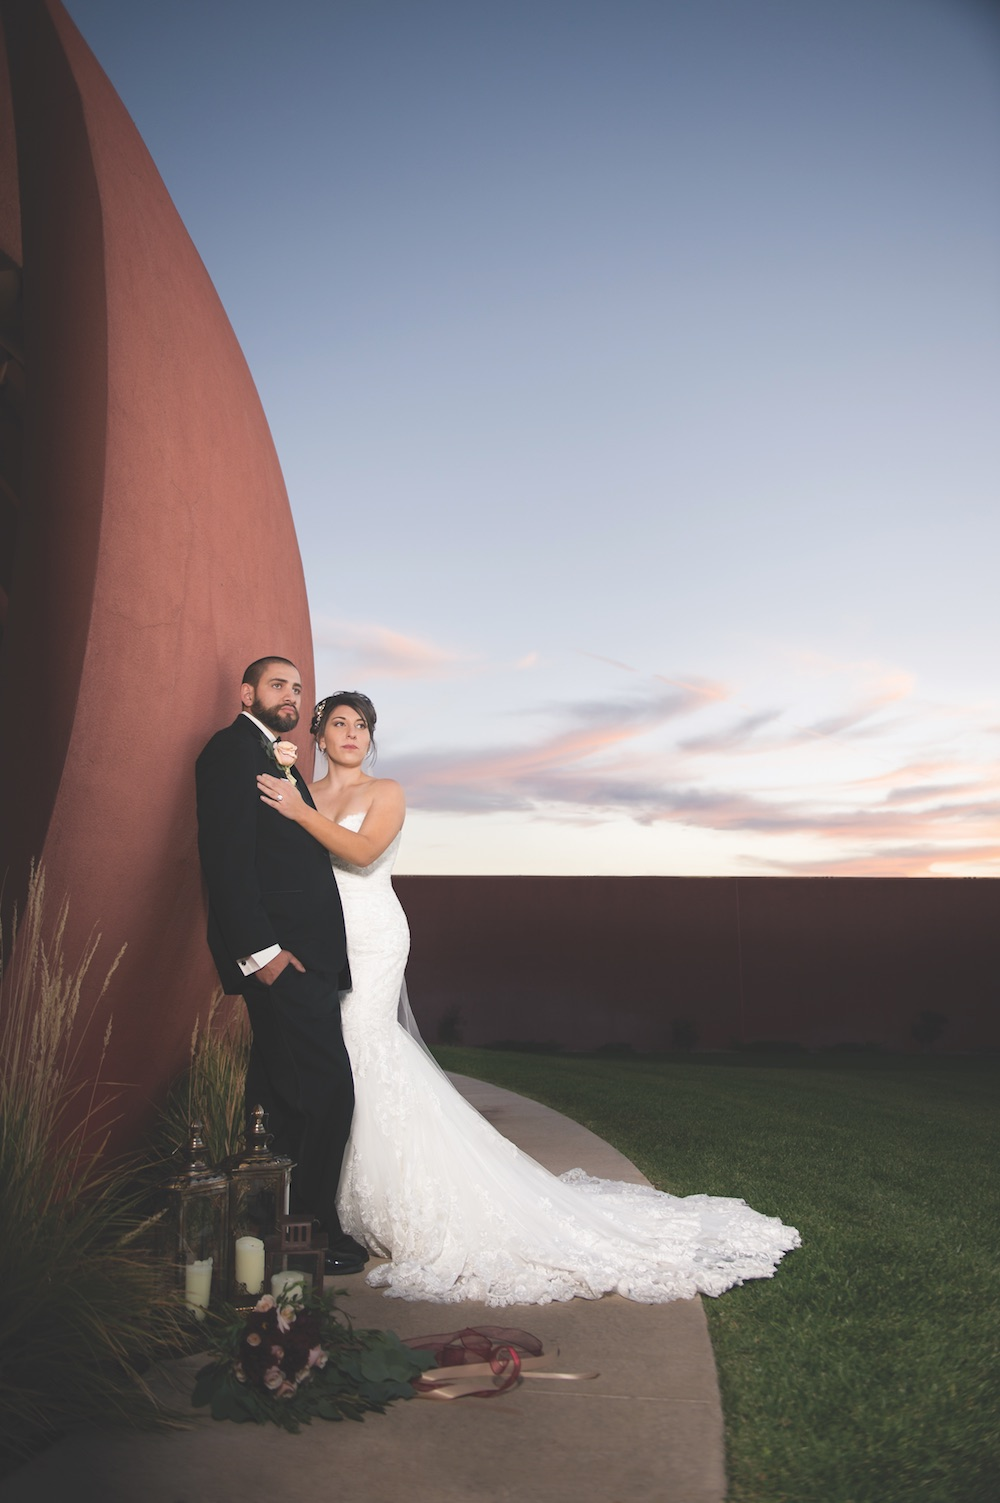 Isleta Resort Venue Wedding Couple Newlyweds Bride Groom Hot Spot